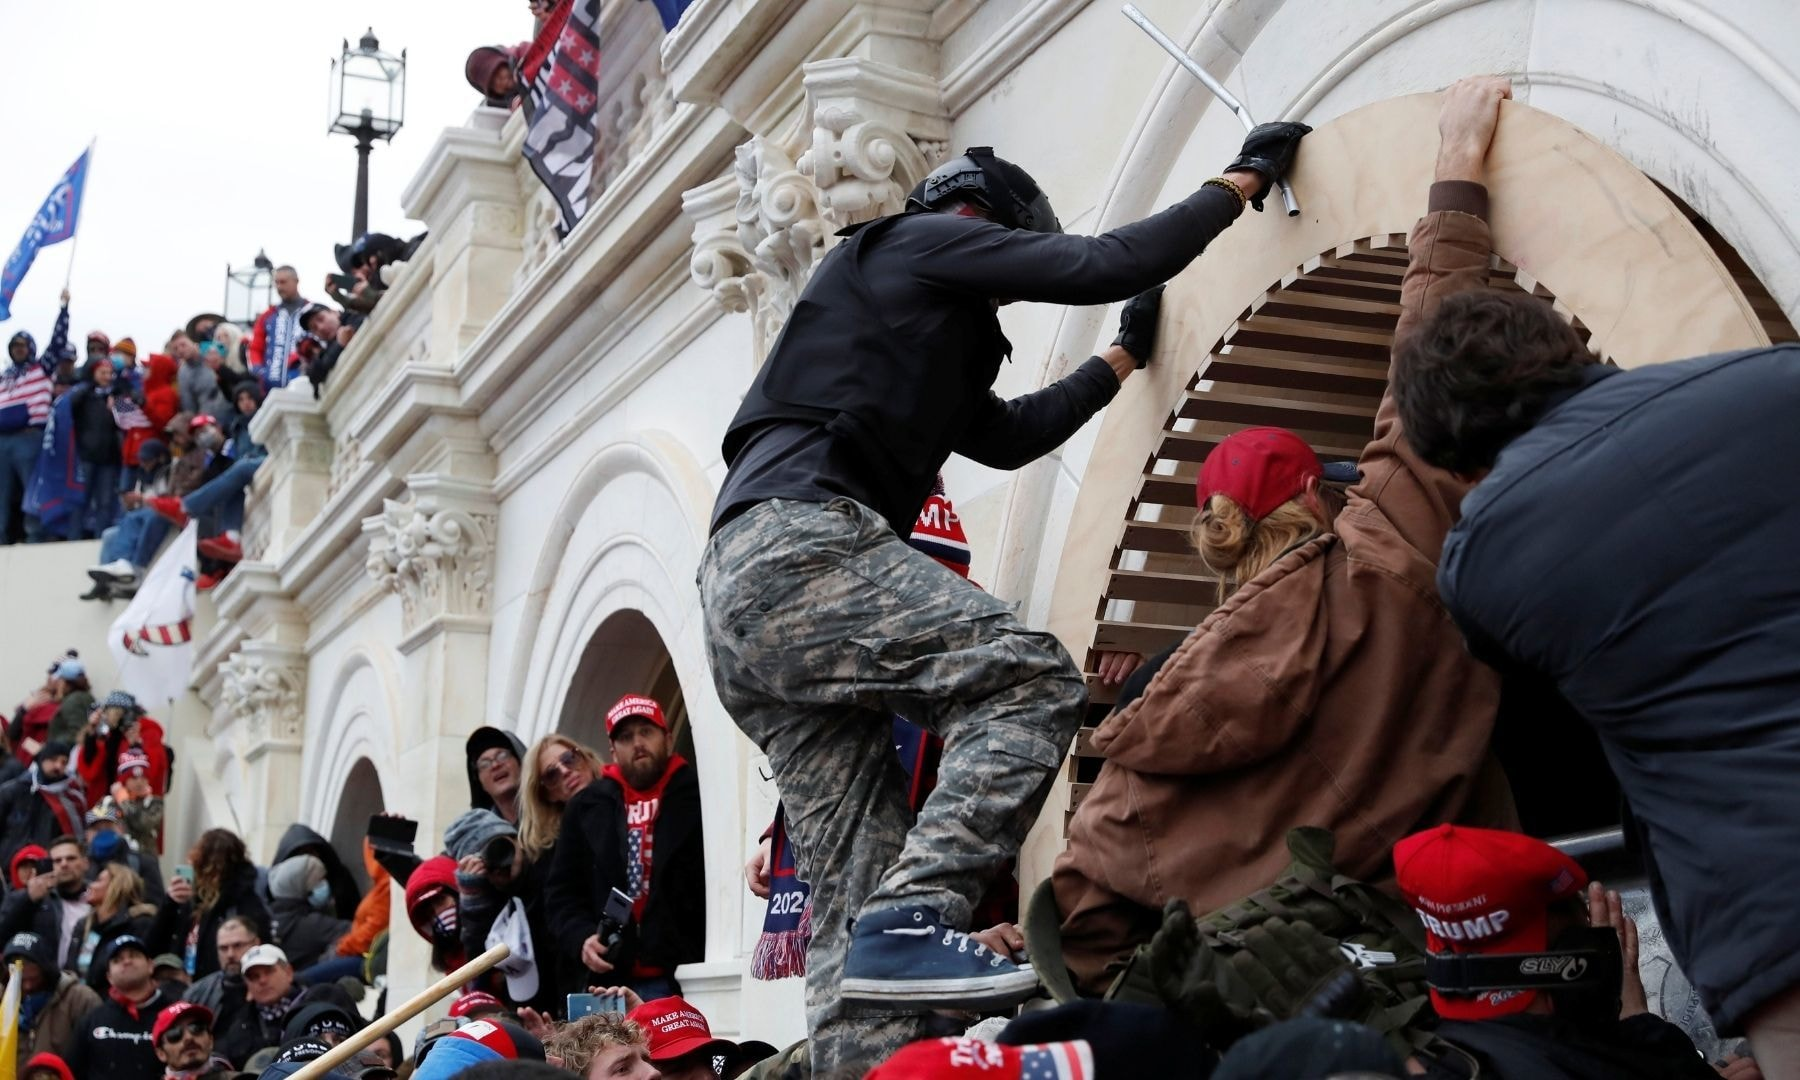 Pro-Trump protesters scale a wall as they storm the US Capitol Building. — Reuters